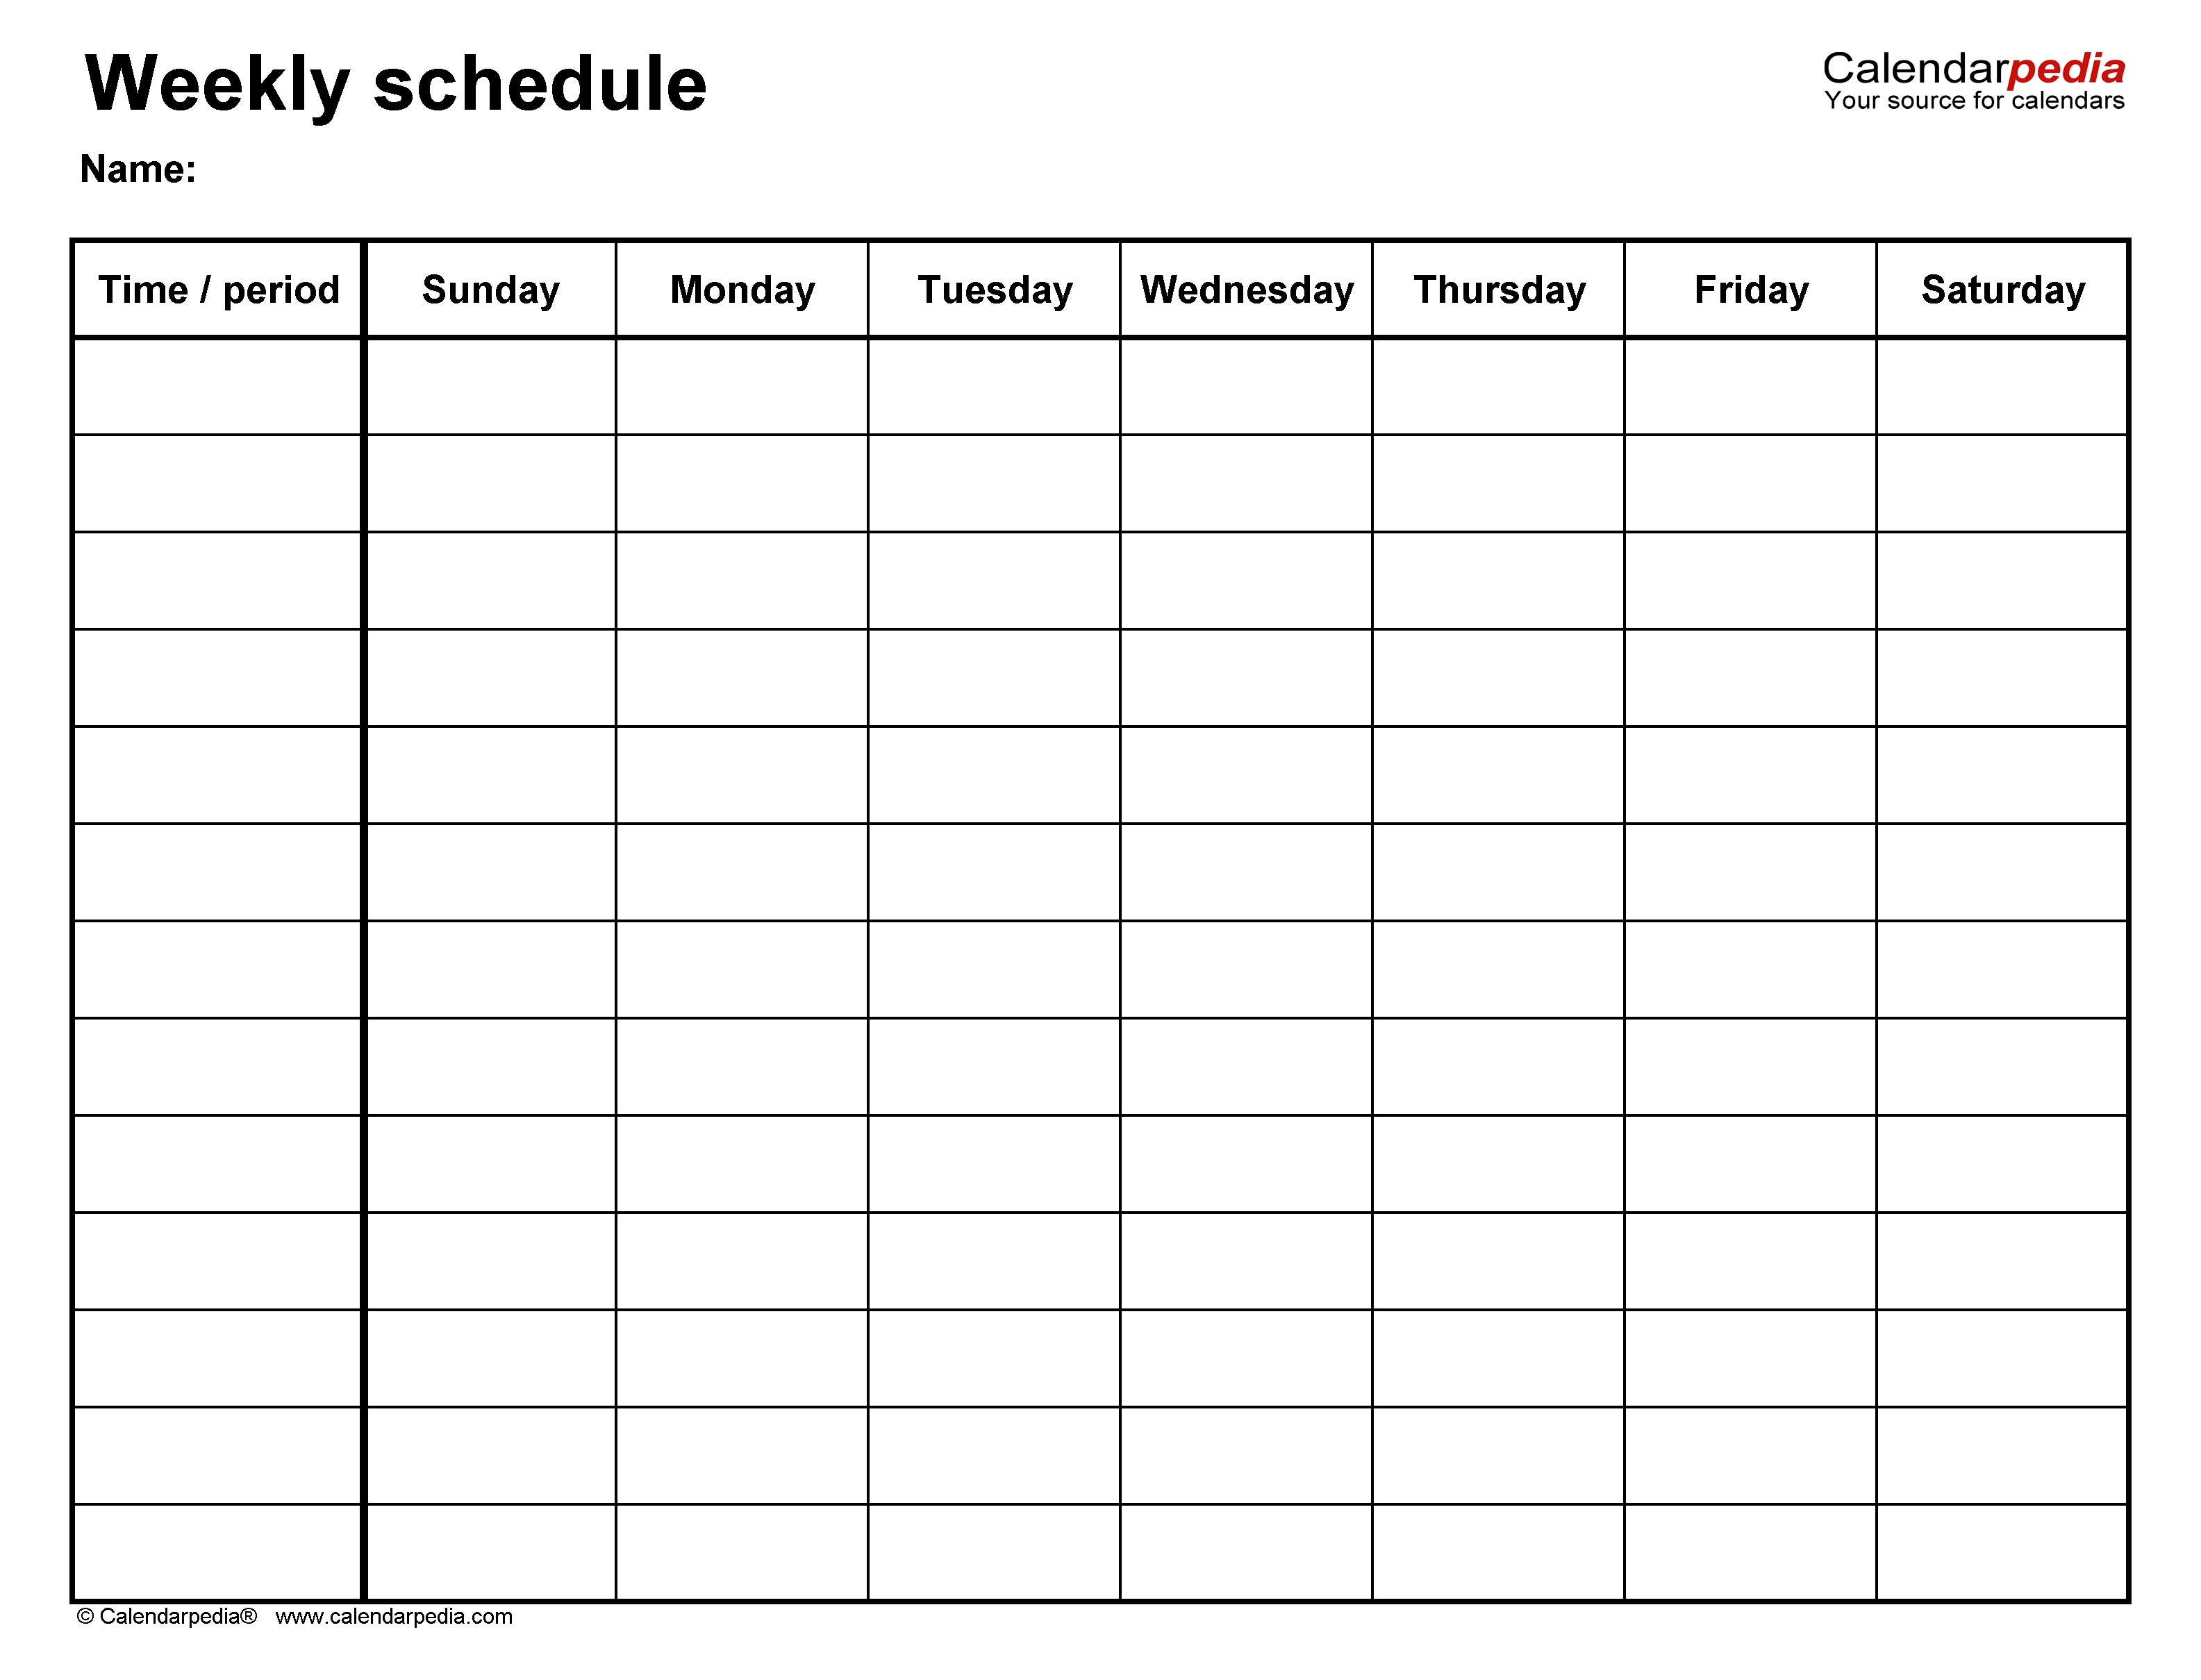 Free Weekly Schedule Templates For Word - 18 Templates  Editable Day Schedule With Time Template